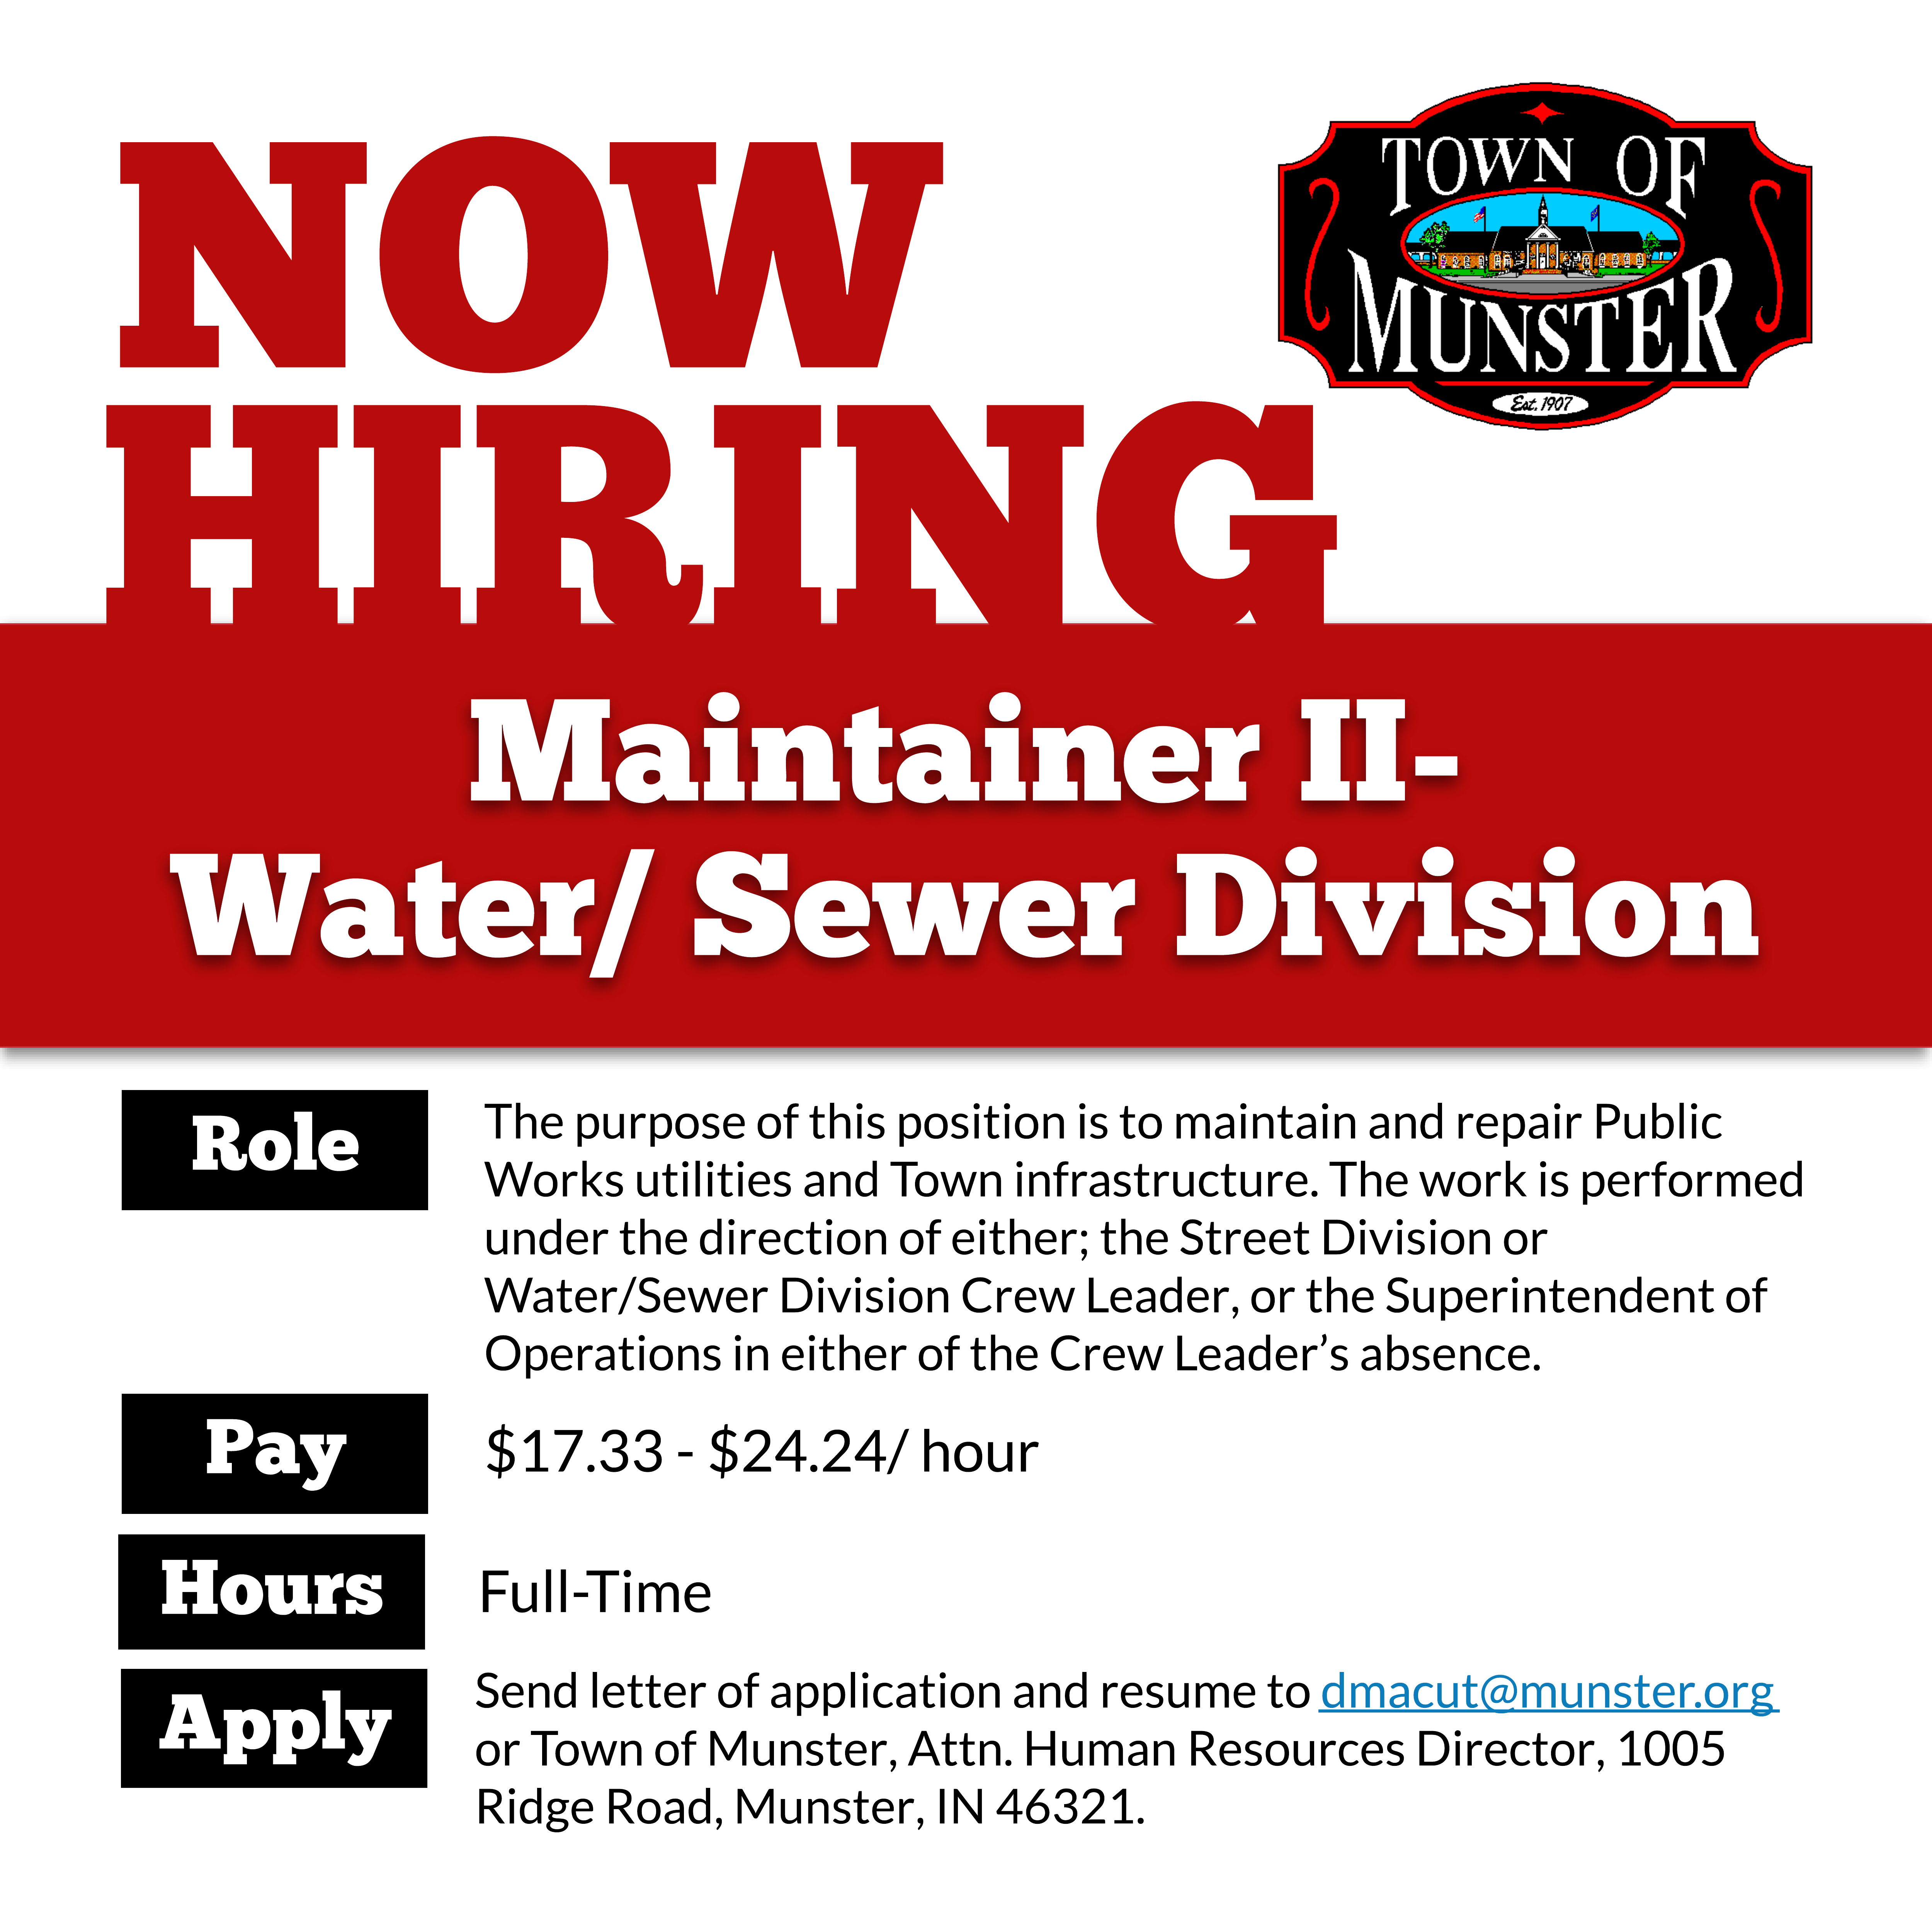 Image for news story: Now Hiring: Maintainer II - Water/Sewer Division